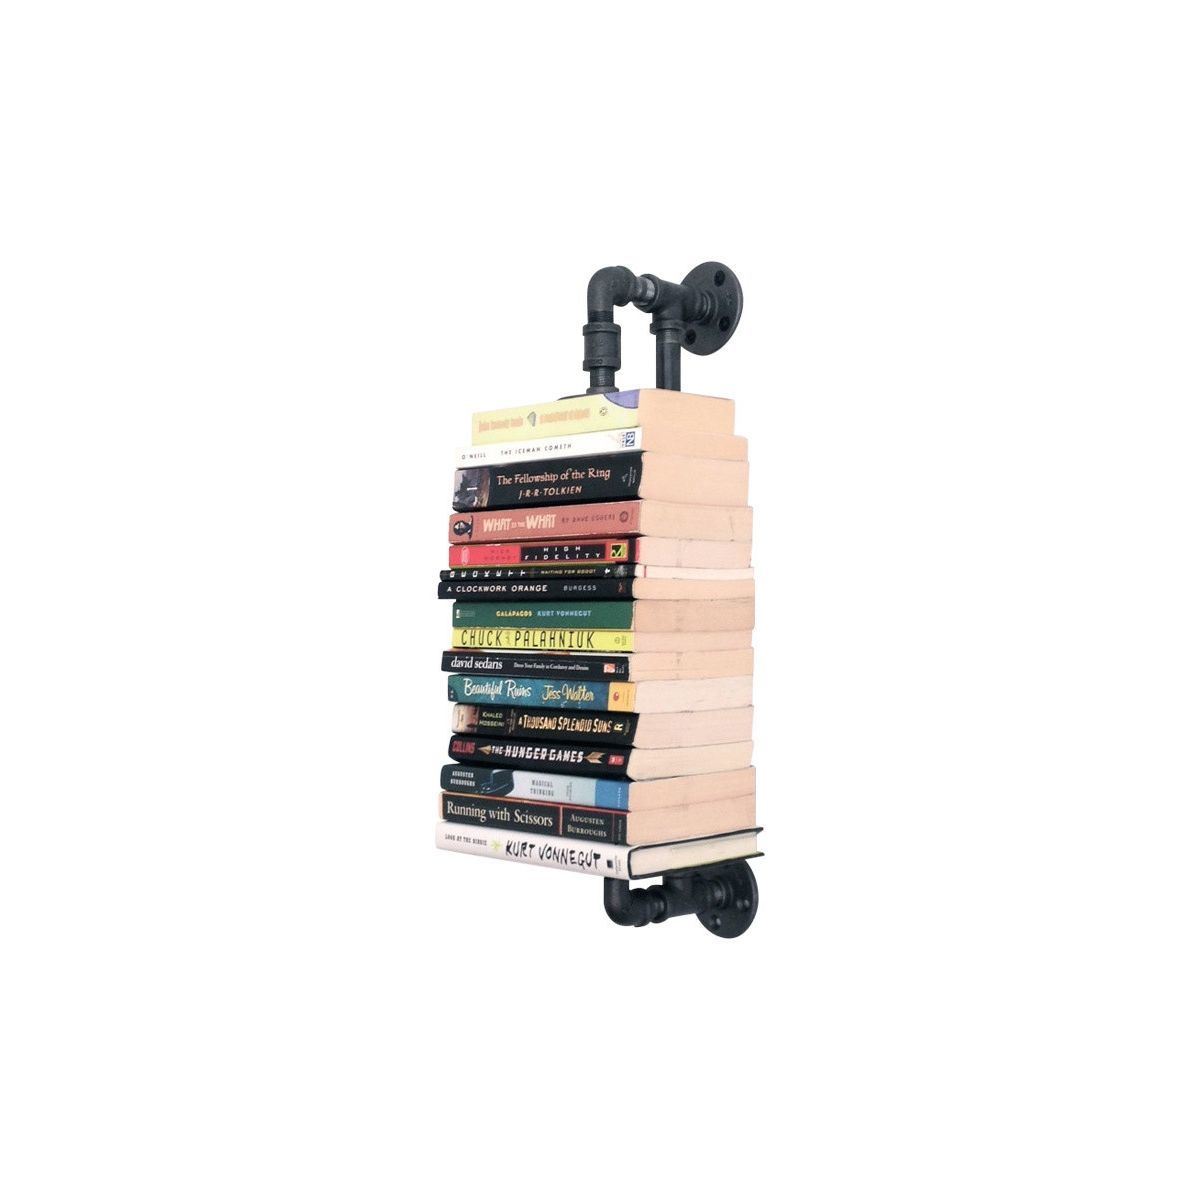 Pipe wall shelf for housing books; takes up less space than a bookshelf photo